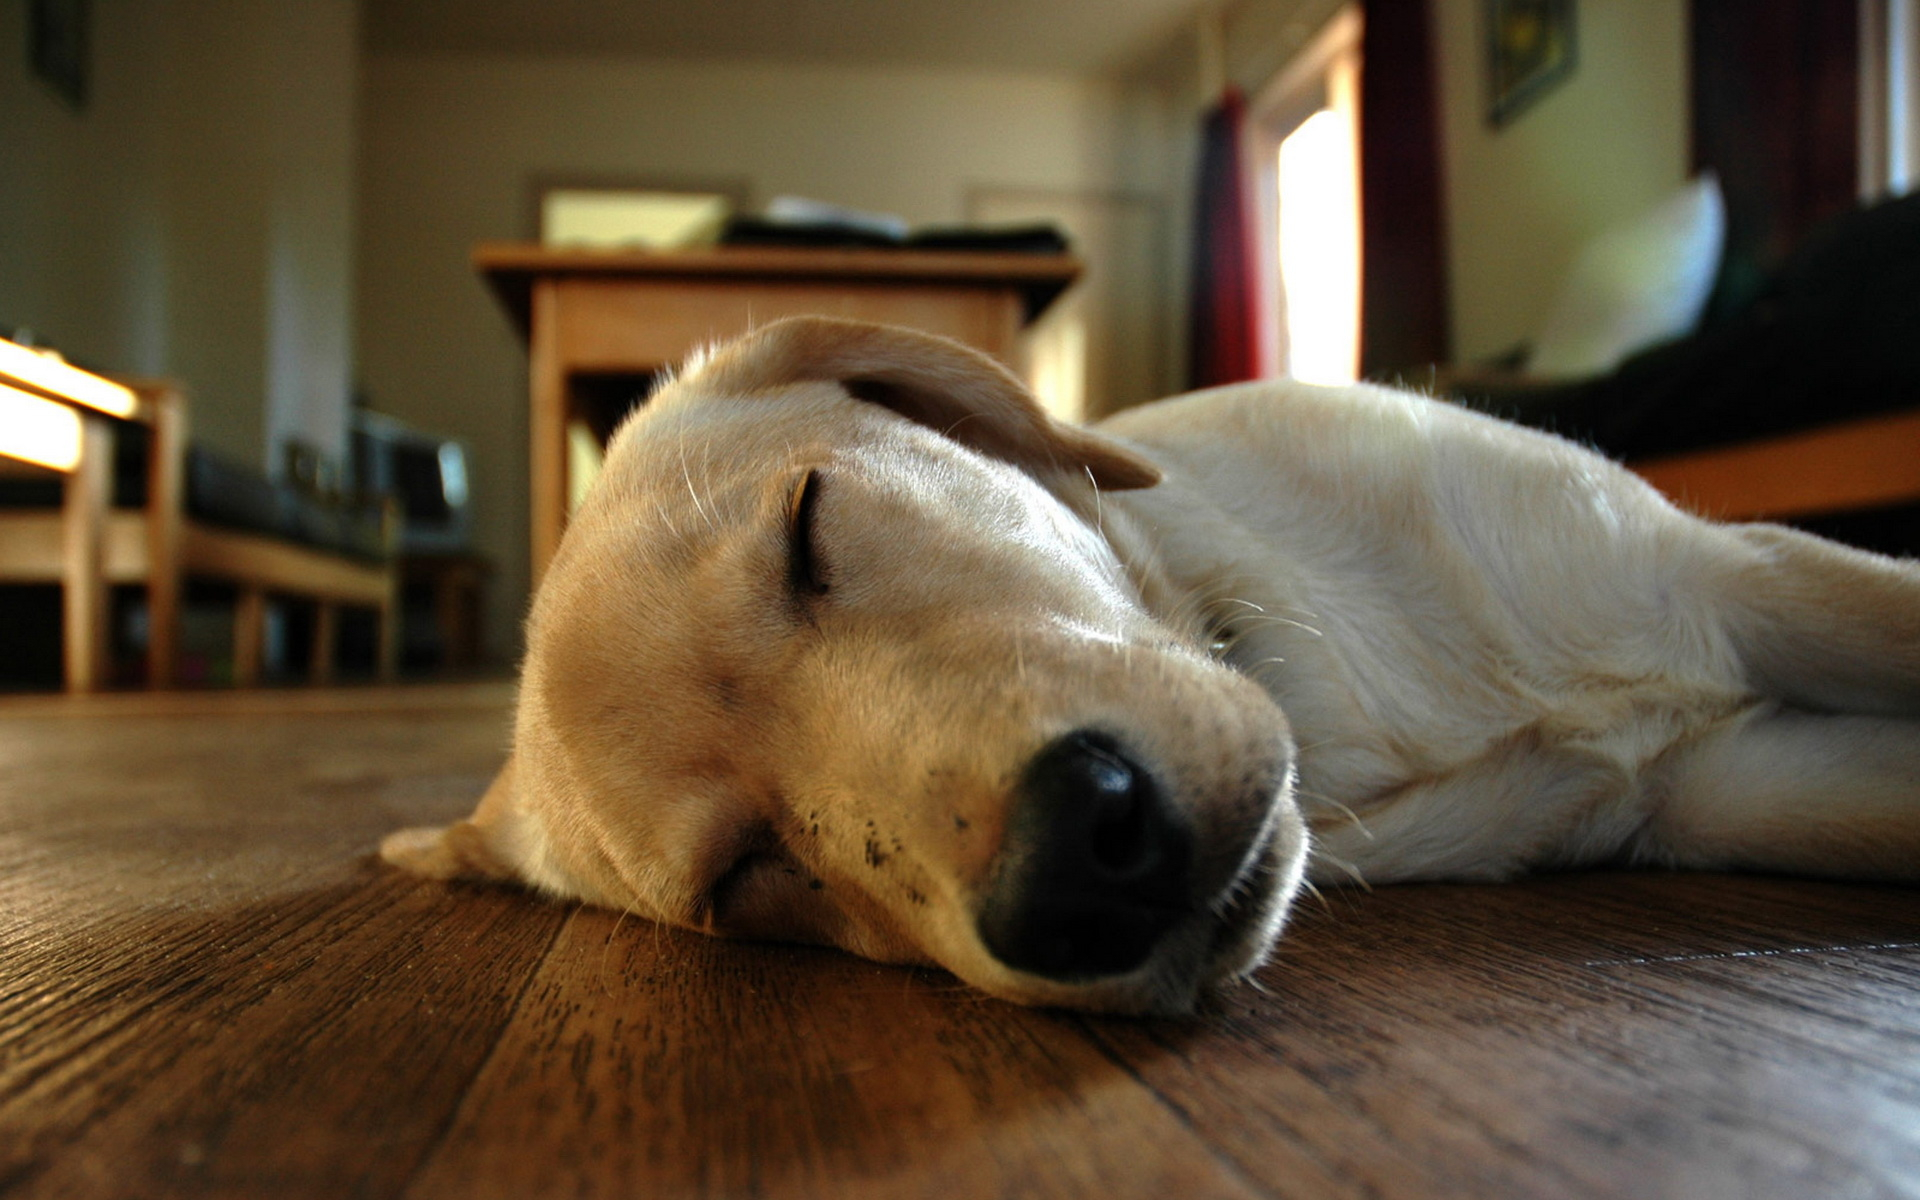 Sleeping Dog Wallpaper